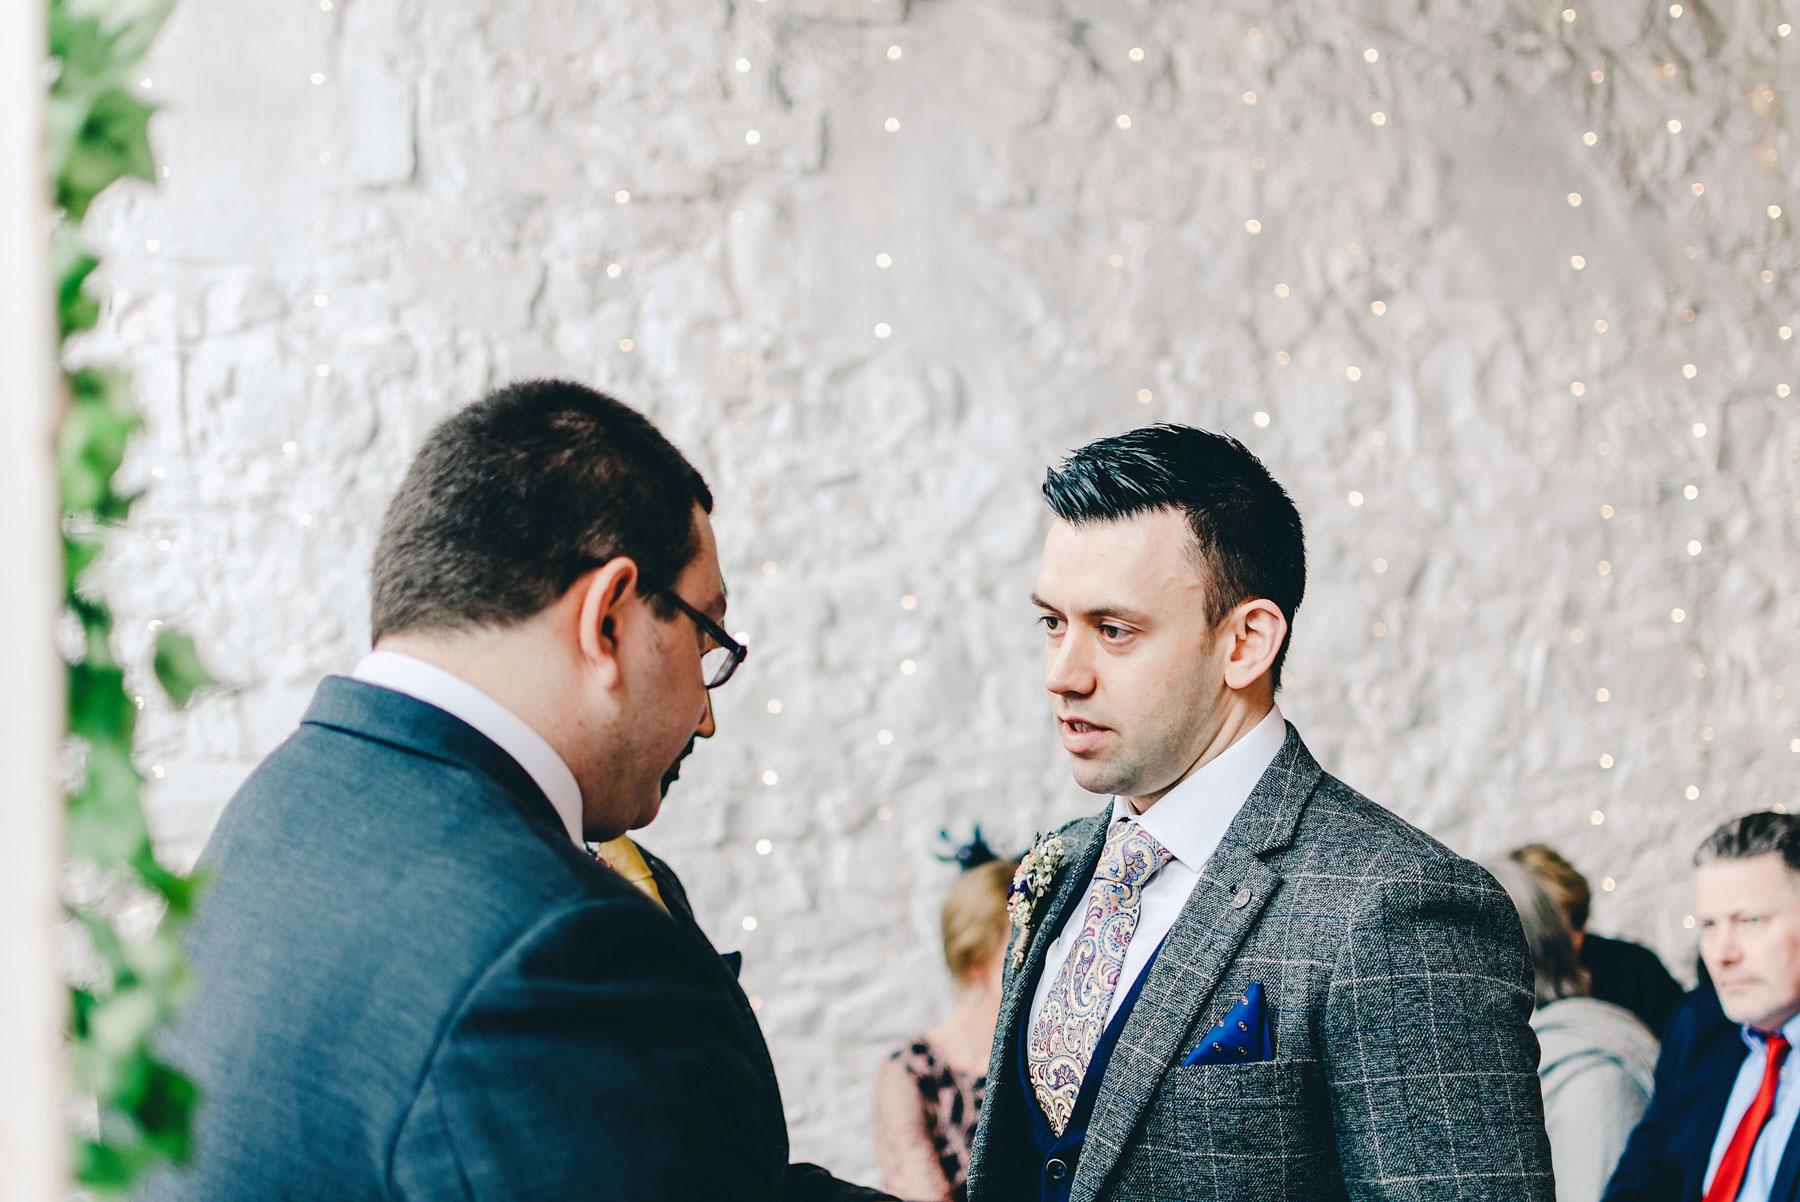 Groom talks to friend before service starts